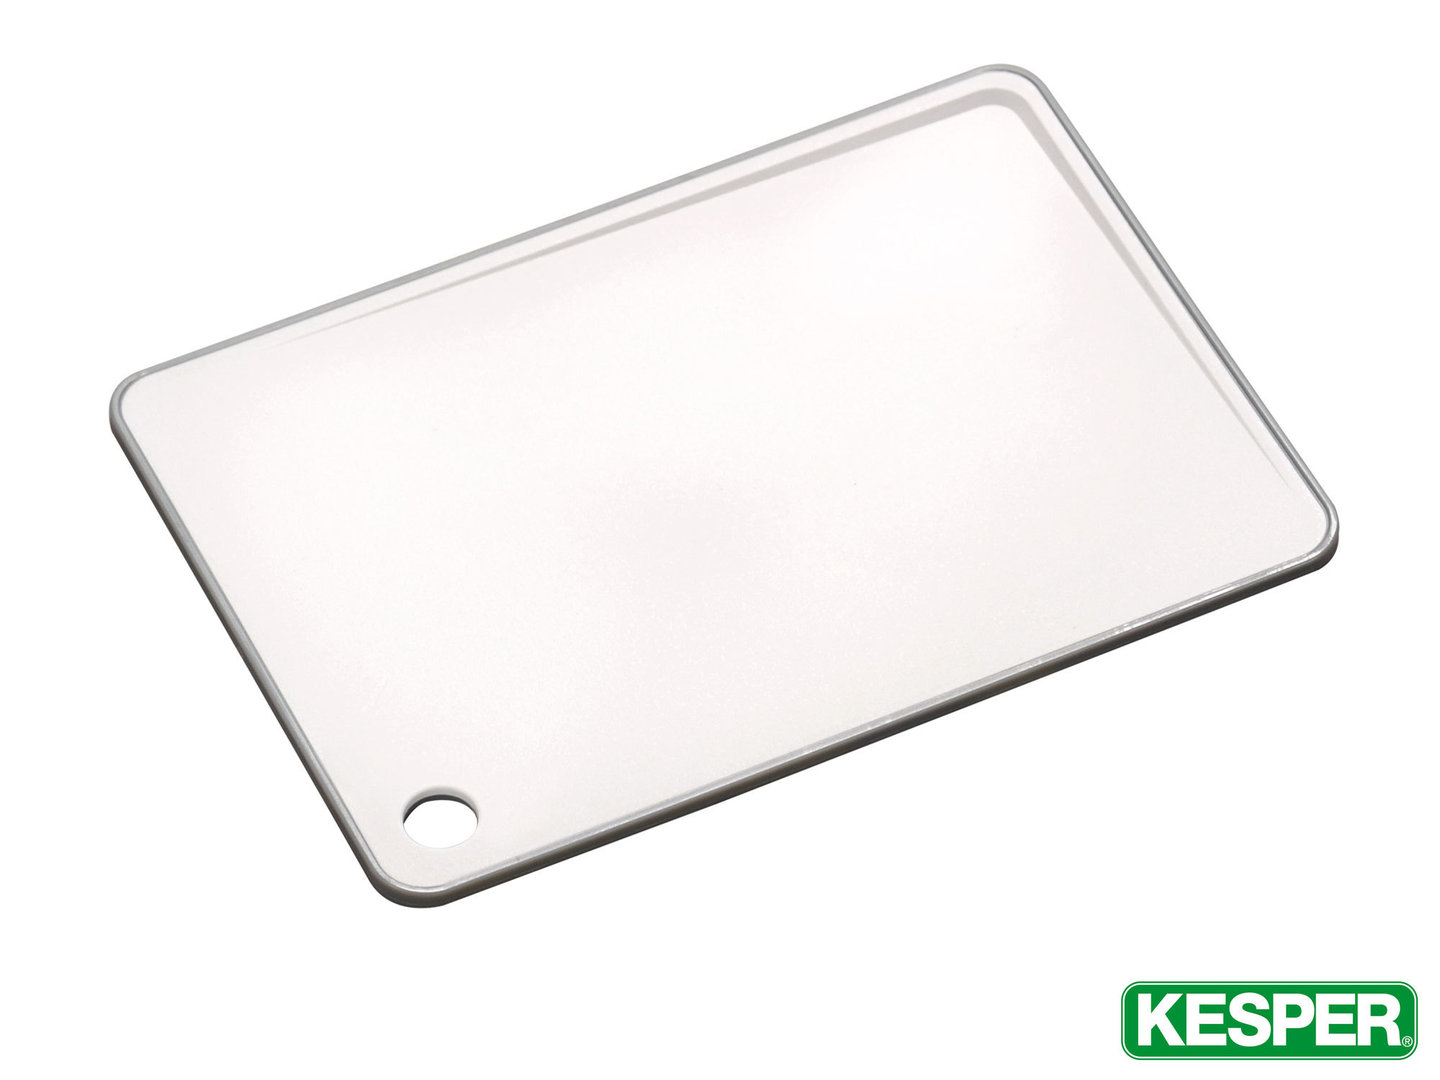 KESPER cutting board 29 x 20,5 cm with inclined cutting surface plastic WHITE